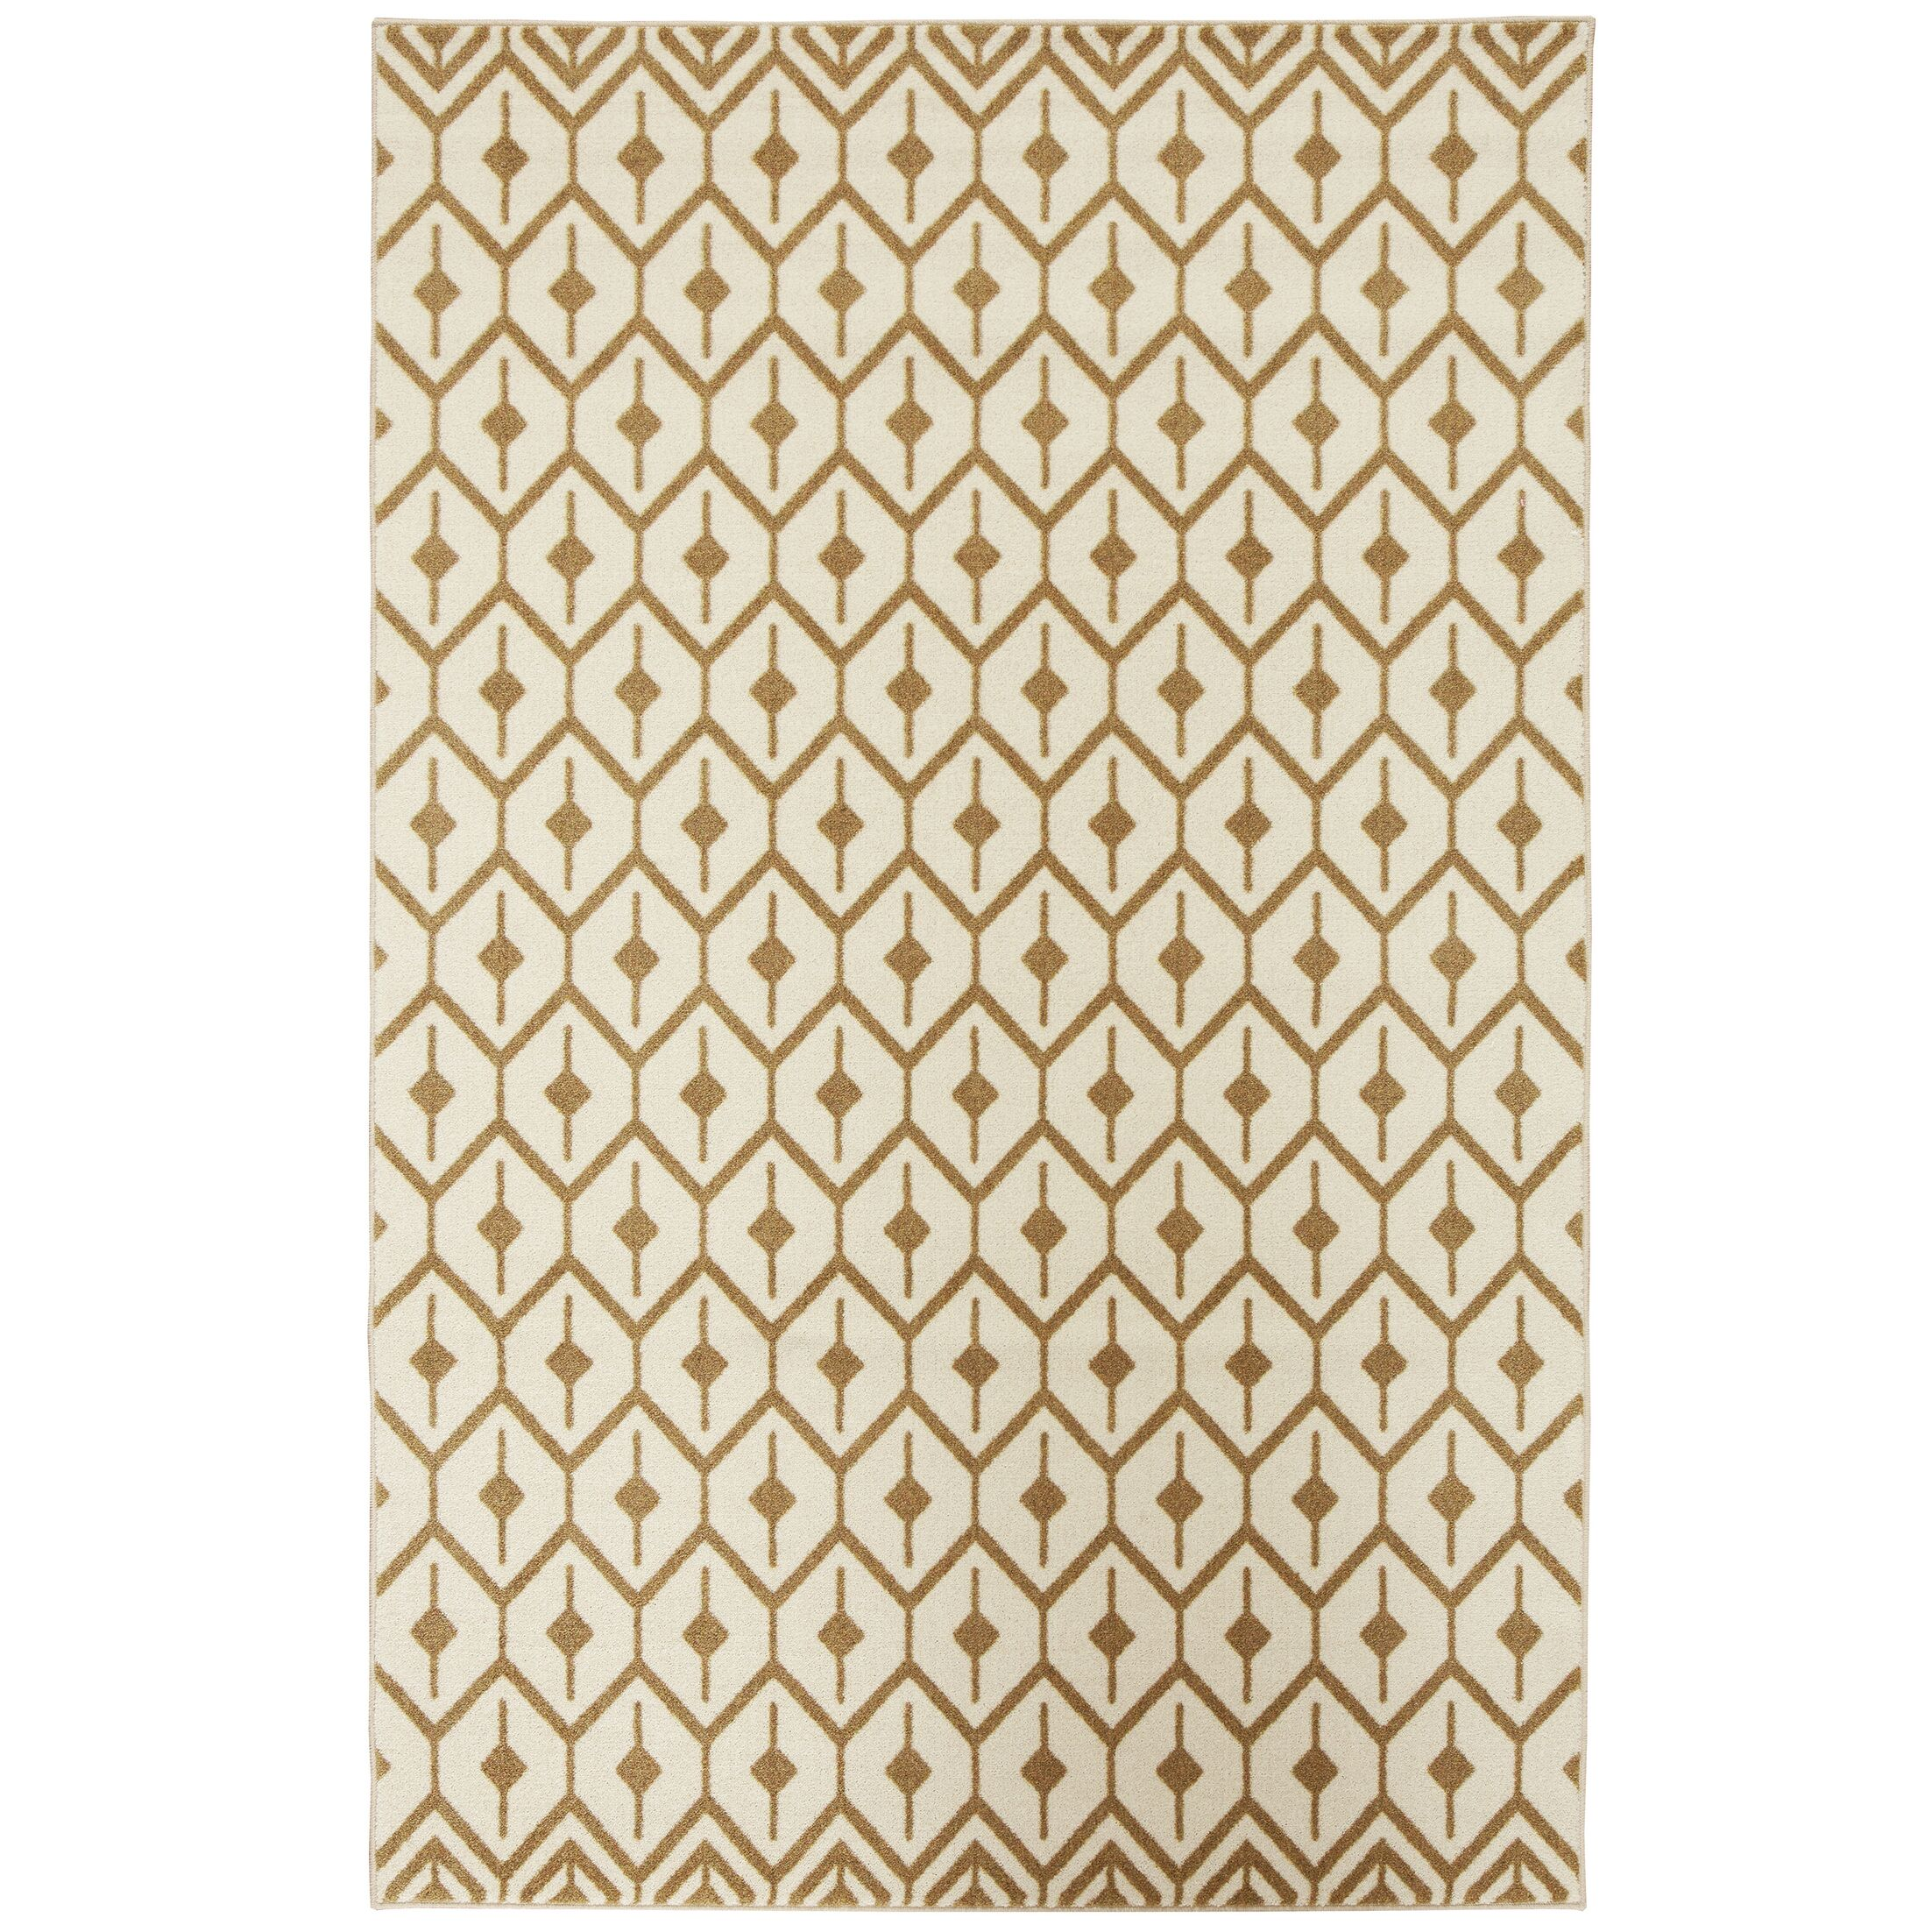 Engler Brown Area Rug Rug Size: Rectangle 5' x 8'